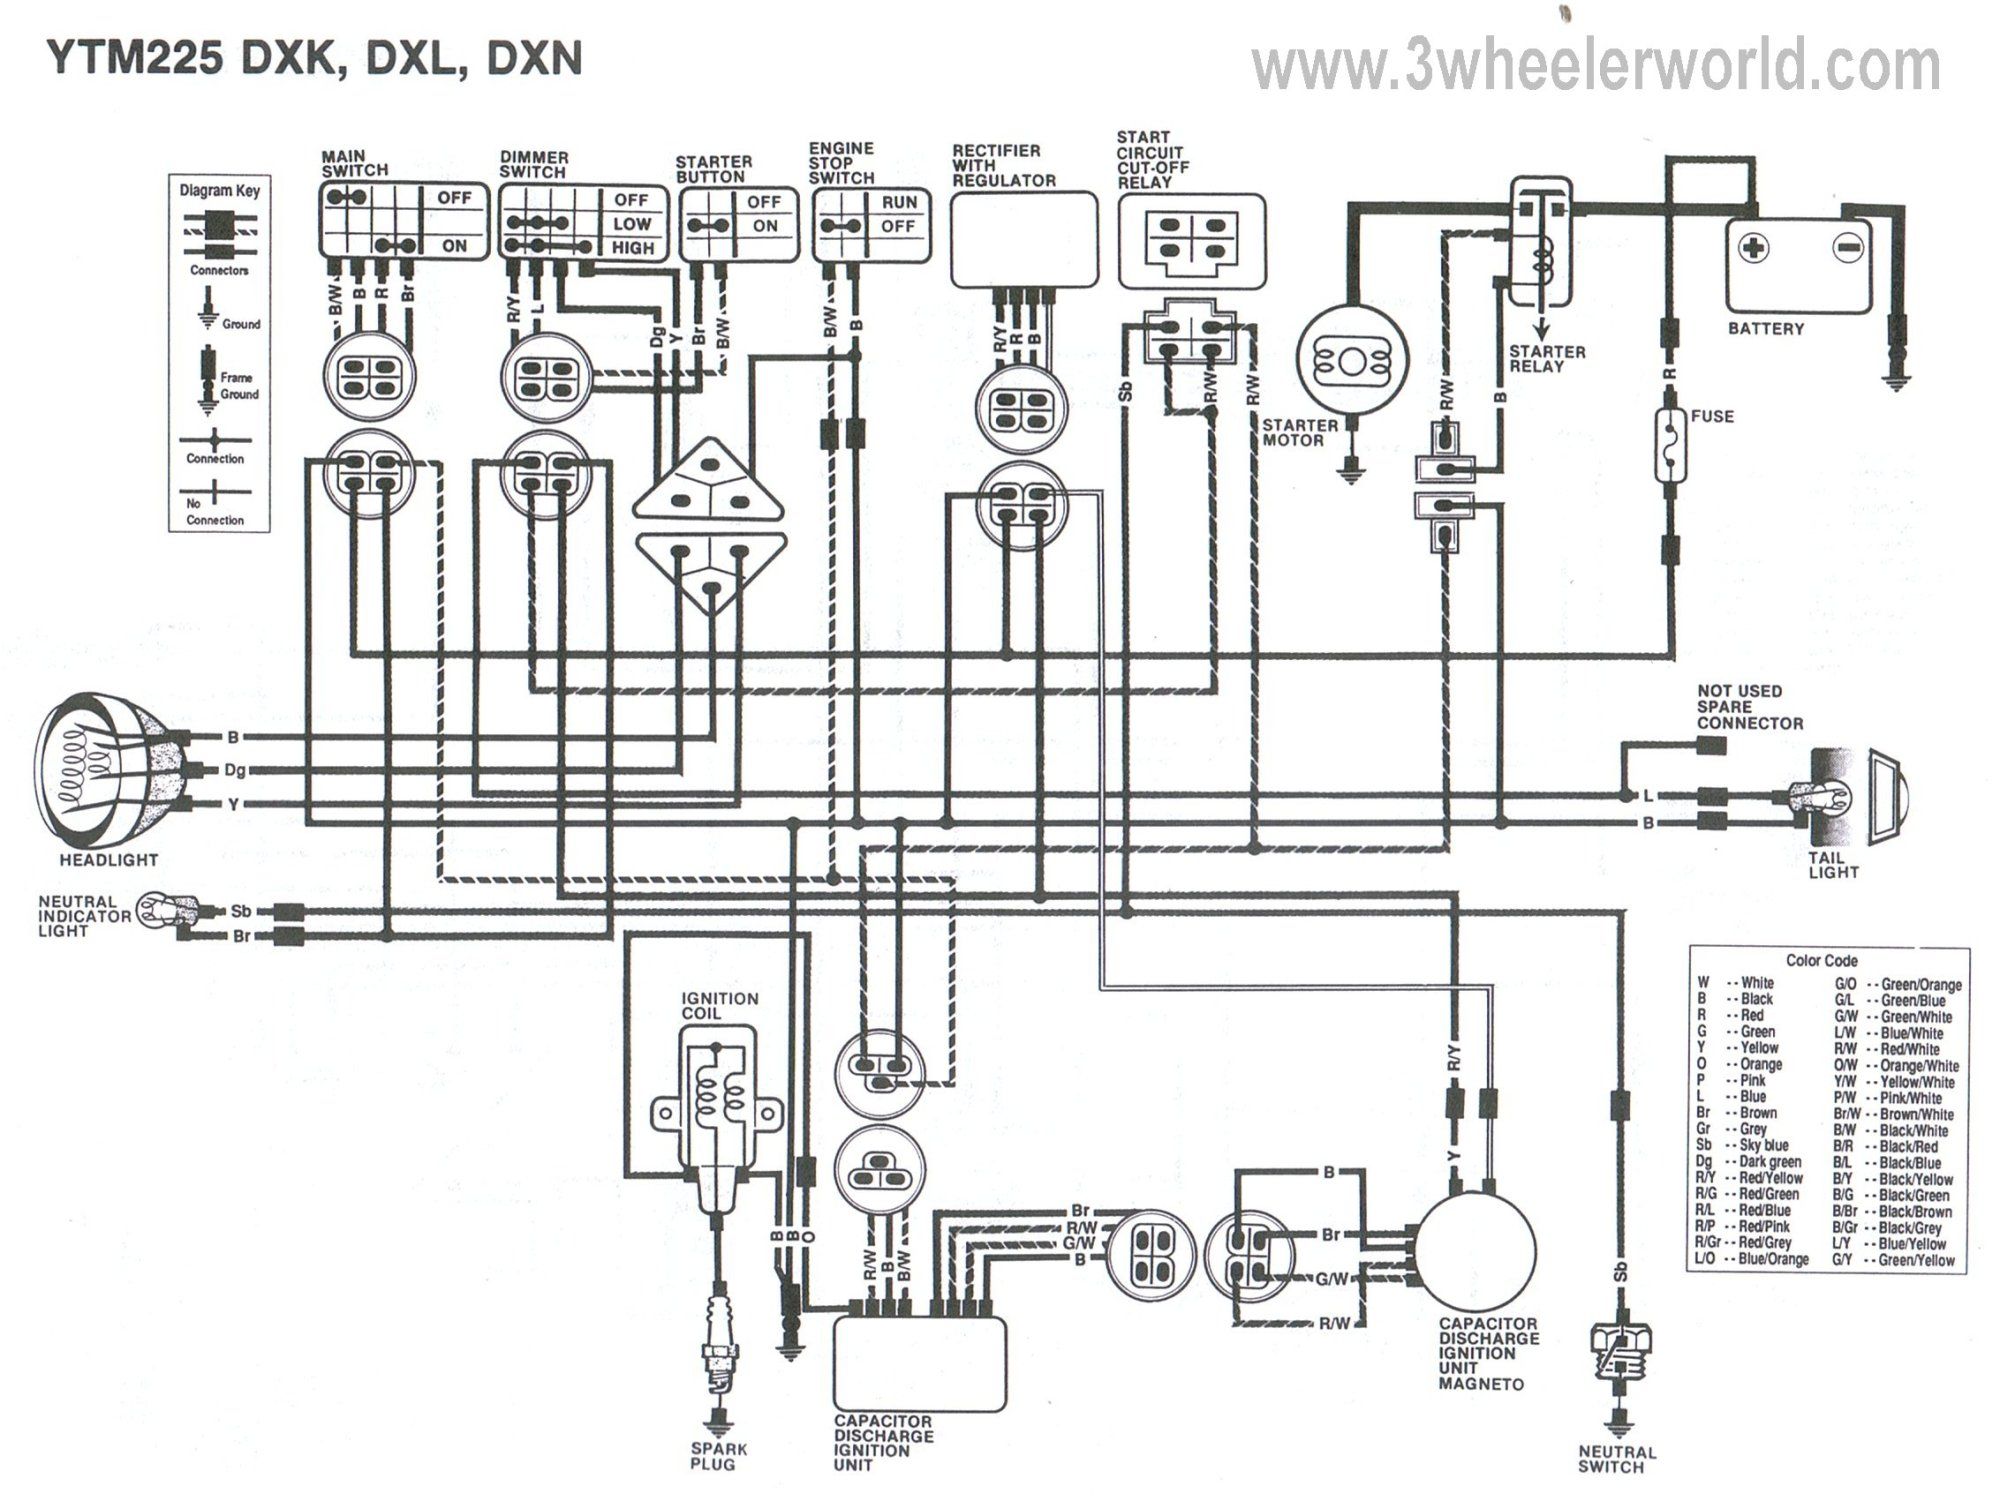 hight resolution of wiring diagram yamaha moto 4 wiring diagram for you1989 yamaha moto 4 250 wiring diagram wiring